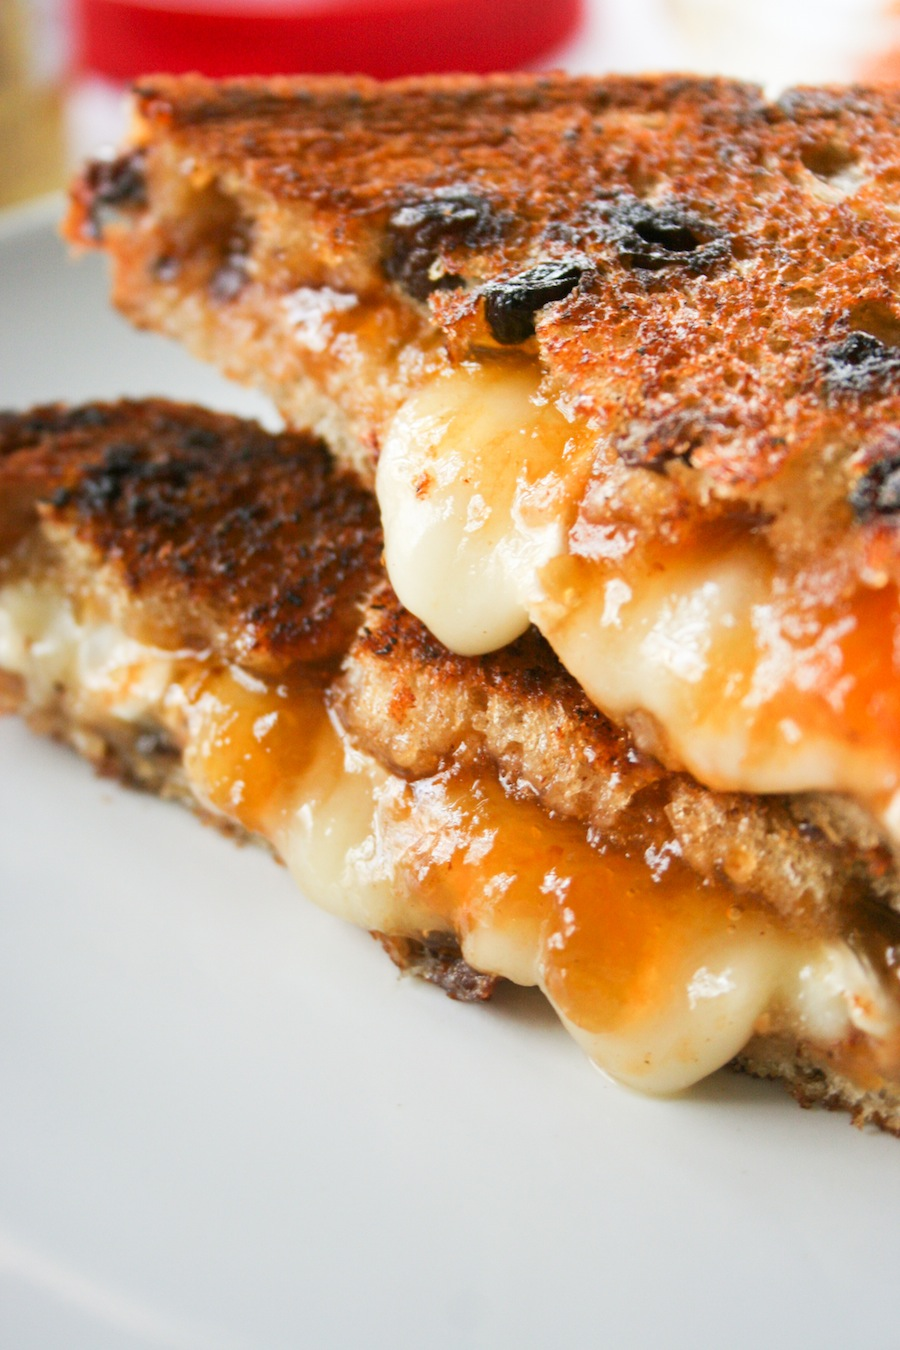 Peanut-Butter-and-Jelly-Grilled-Cheese-Sandwich-Legal-Miss-Sunshine-25 ...